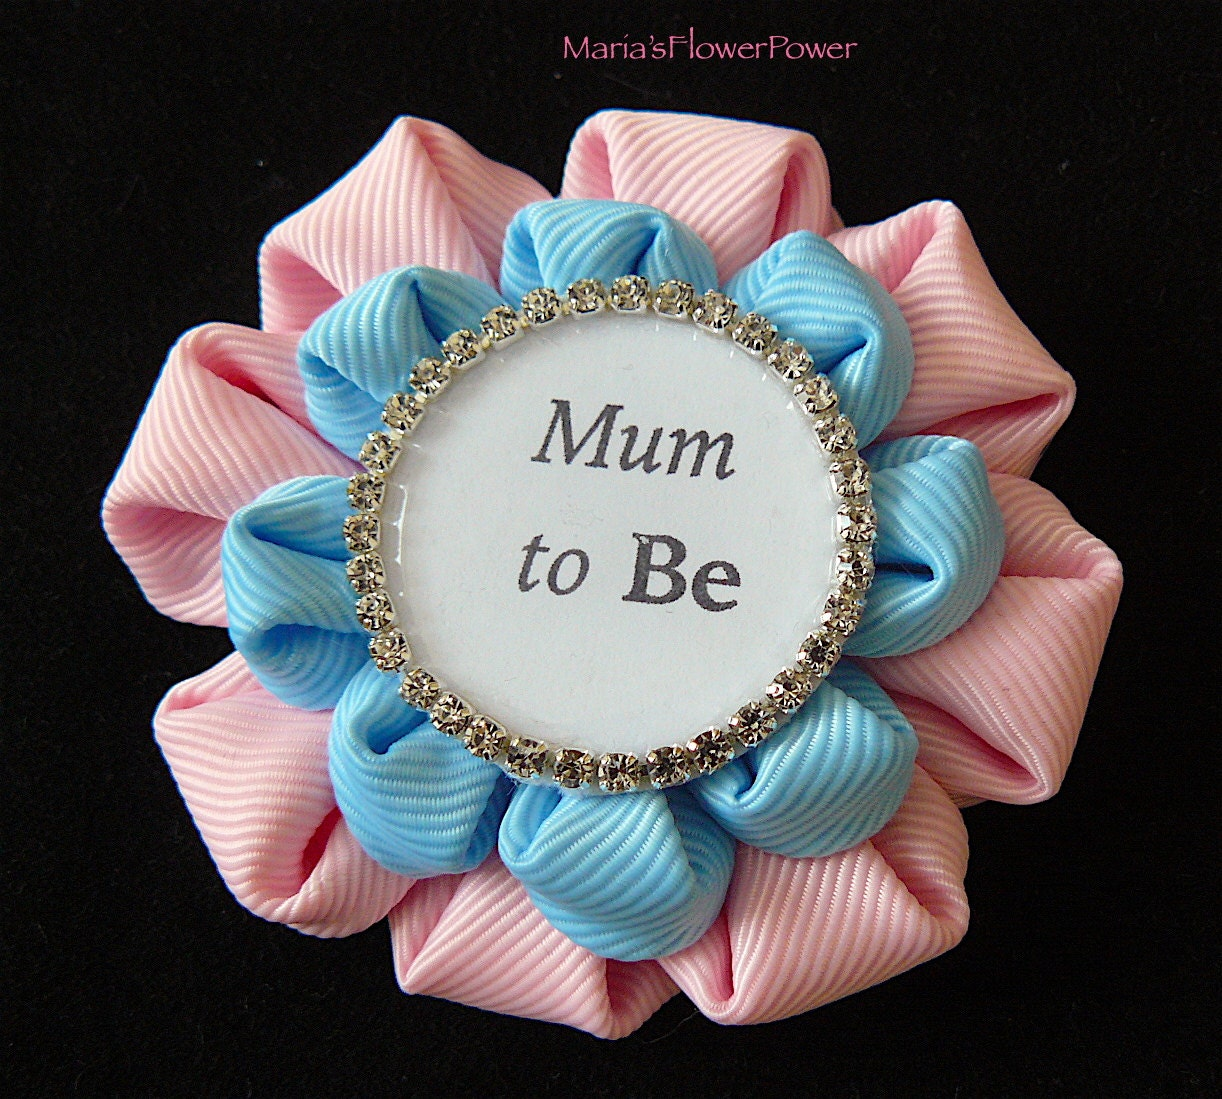 Mums Baby Shower: Baby Shower DecorationsMum To Be Mommy To BeNew Grandma